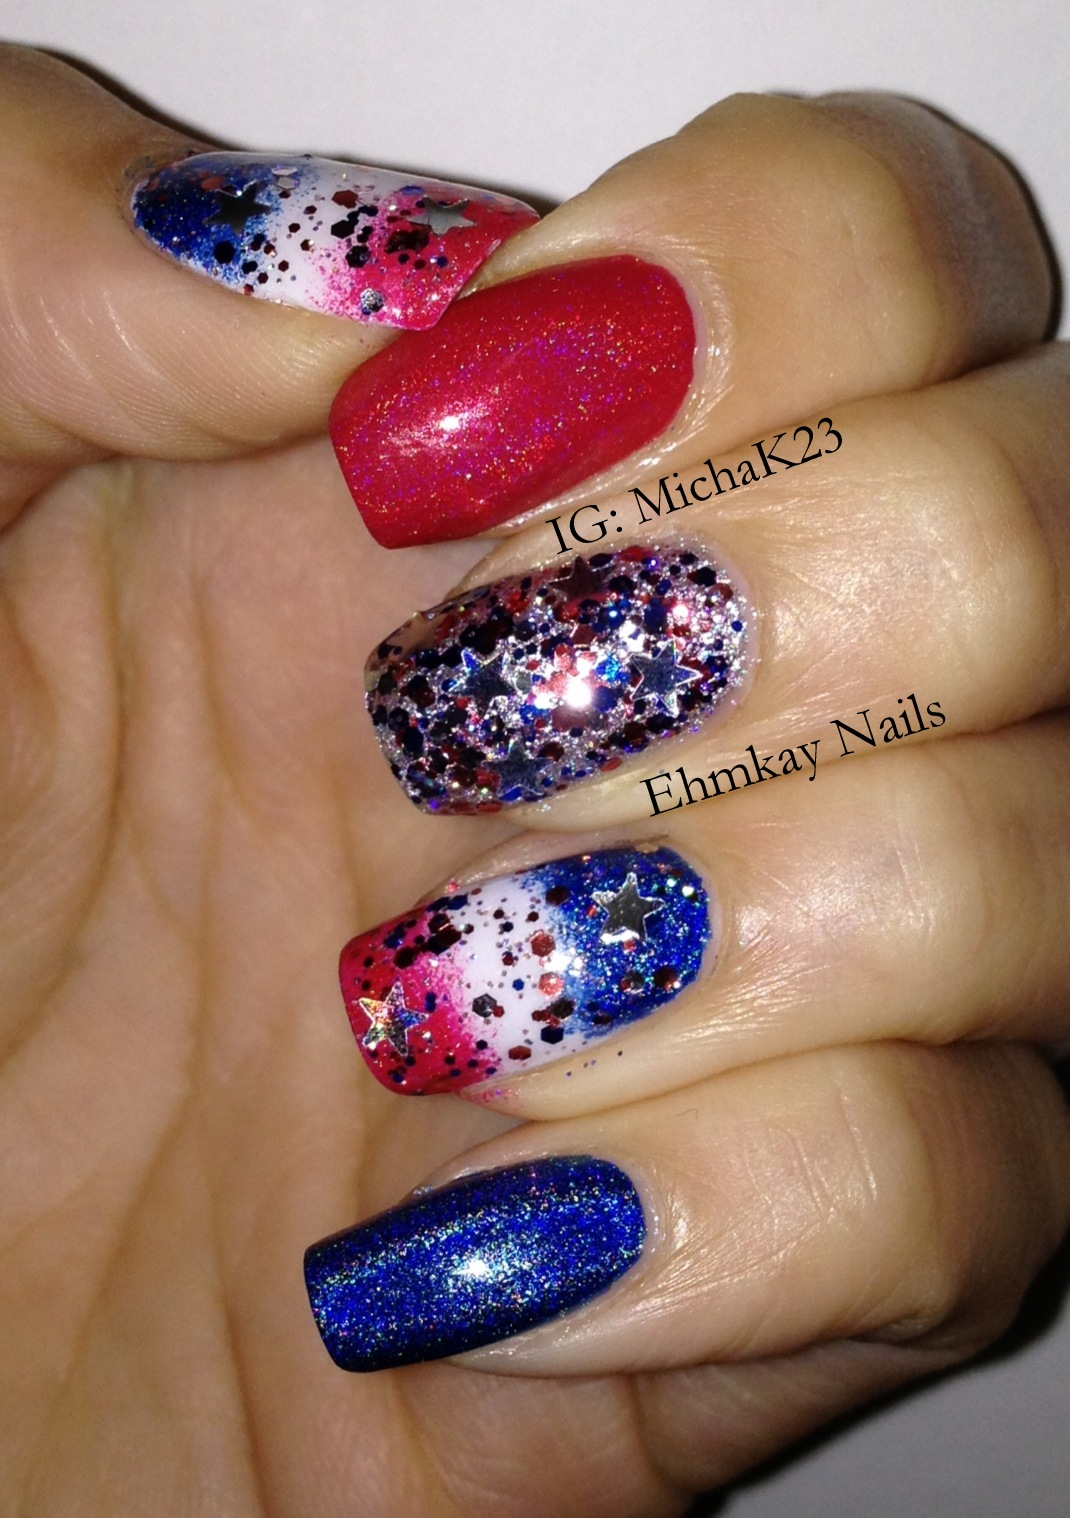 Ehmkay nails happy fourth of july quick patriotic nail art patriotic fourth of july nail art prinsesfo Gallery